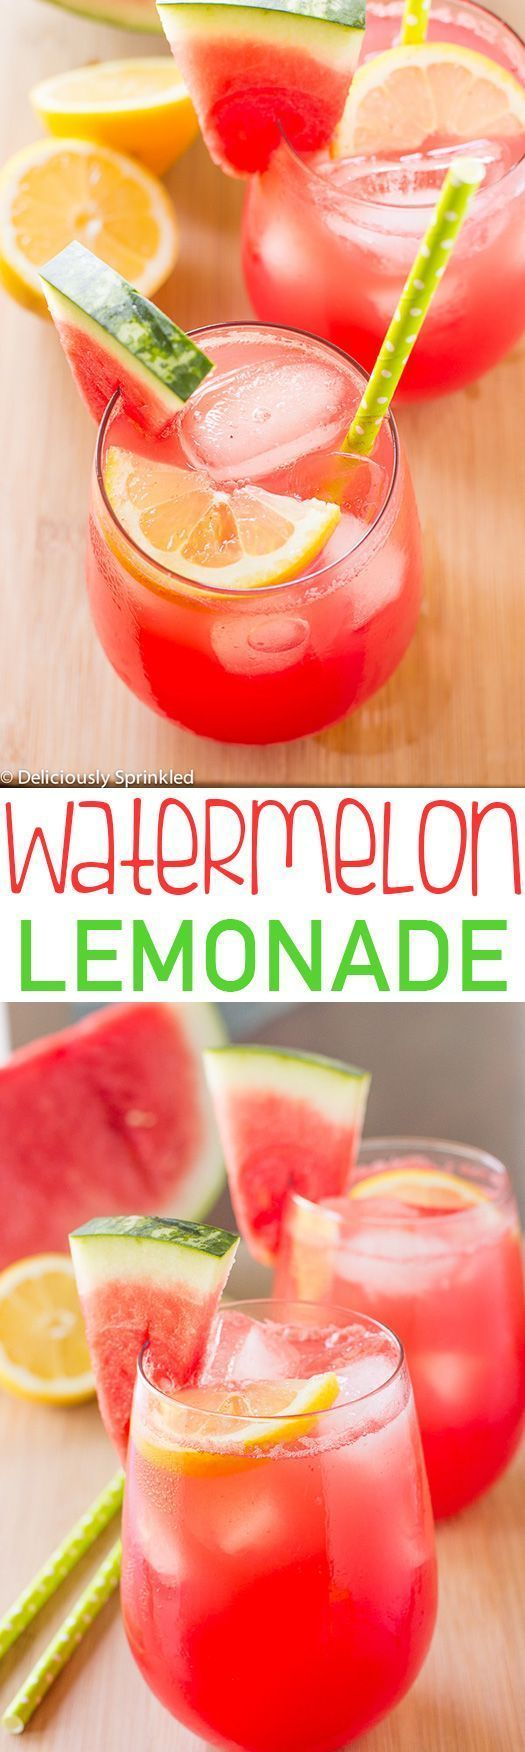 Watermelon Lemonade-easy to make and it's the perfect summer drink!